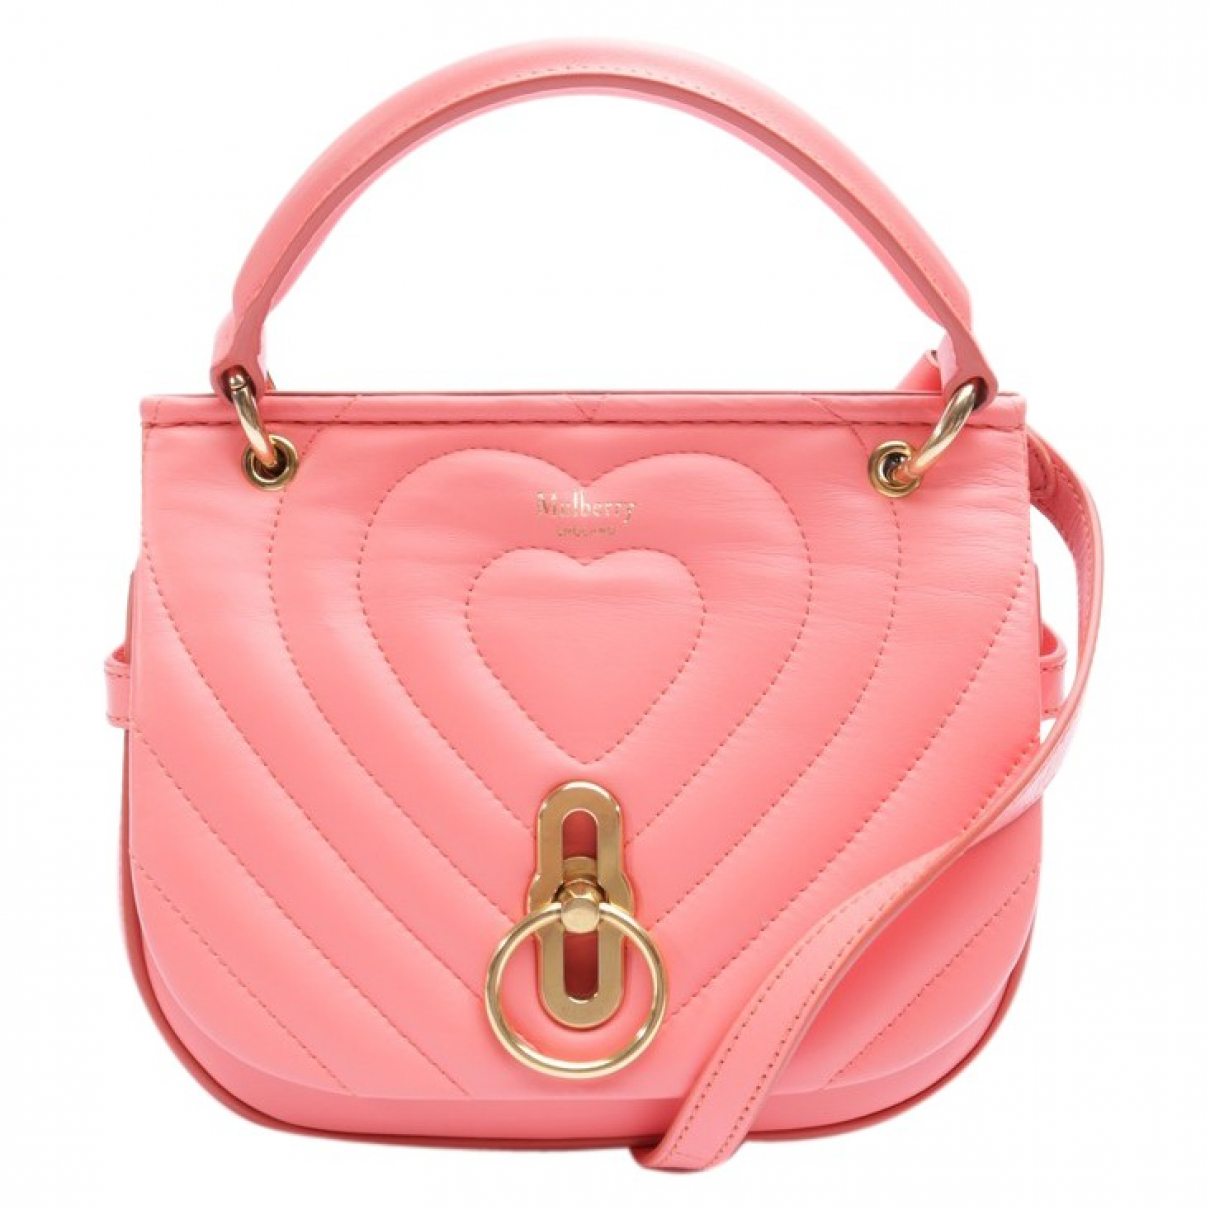 Mulberry - Sac a main Amberley pour femme en cuir - rouge